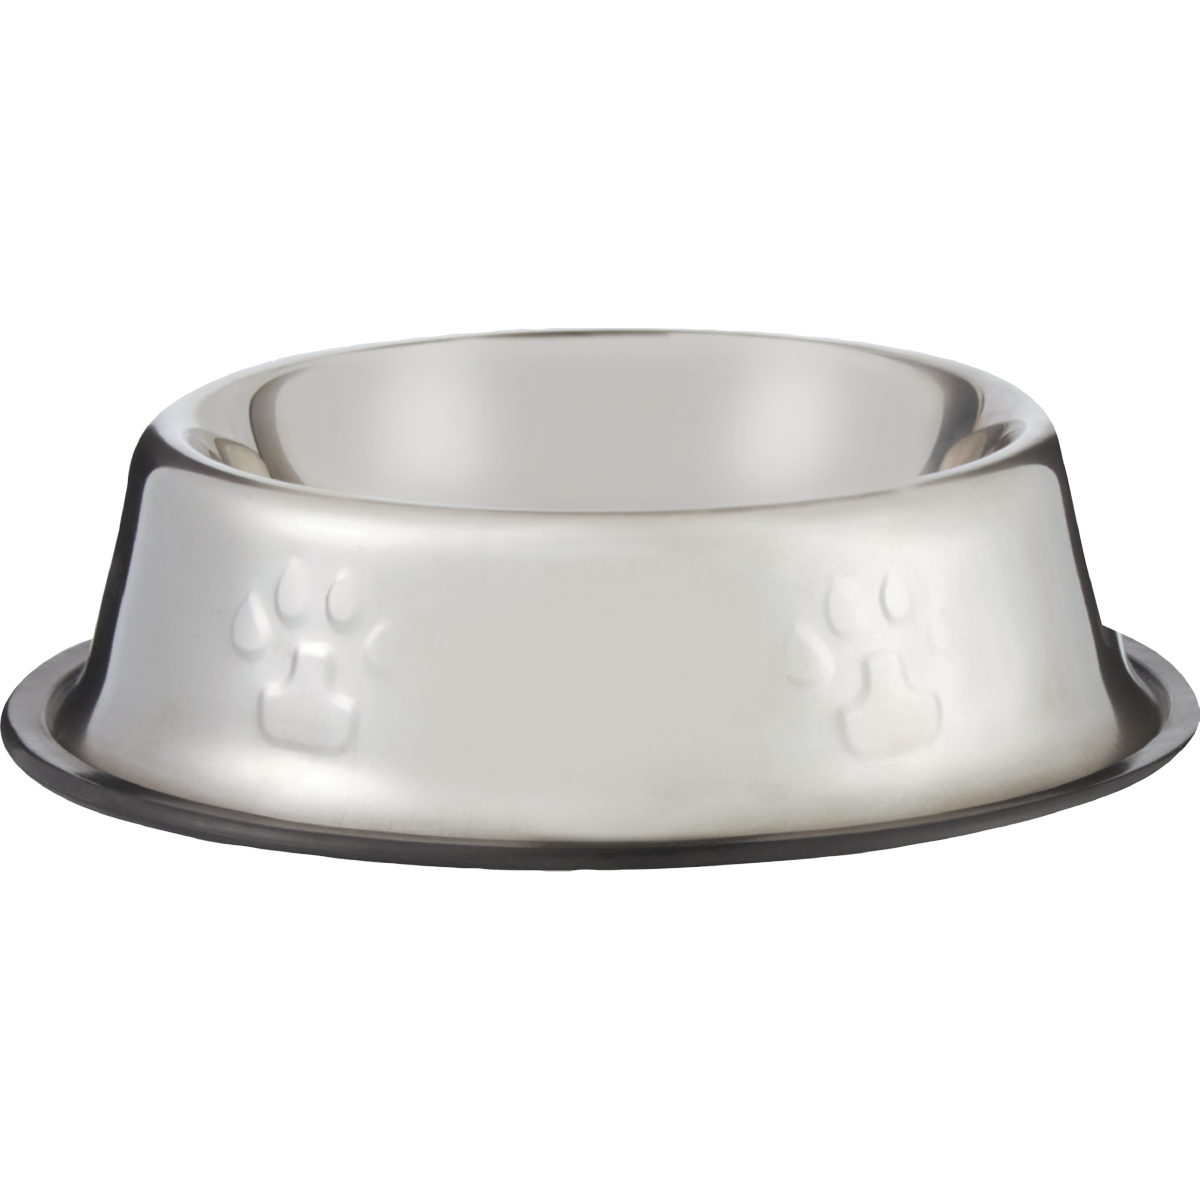 18cm stainless steel dog bowl with rubber